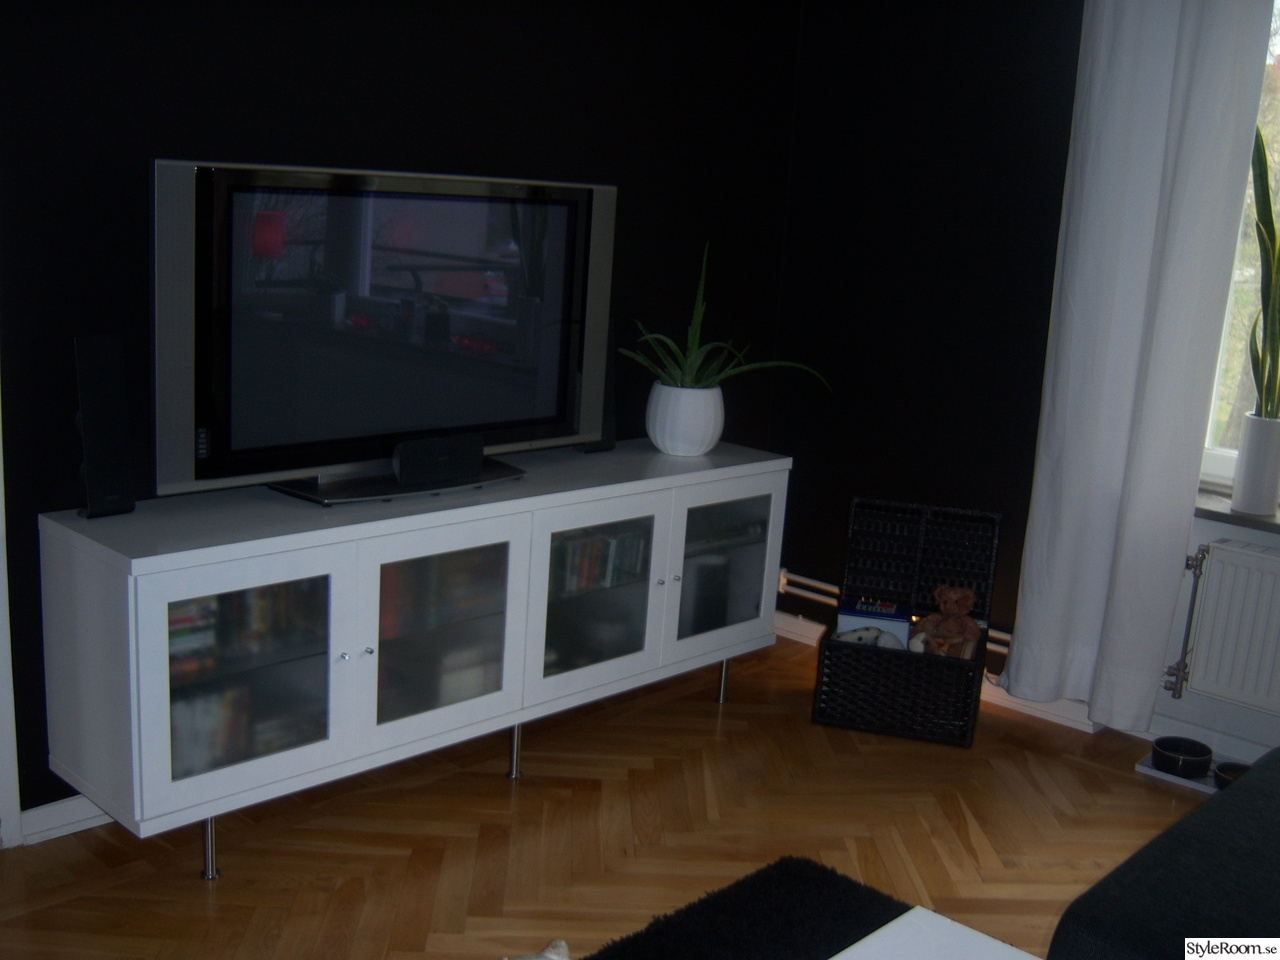 ikea sideboard norden with Sideboard Ikea Bonde on 80035920 additionally Hack An Ikea Sideboard Into A Kitchen Island together with Sideboard ikea bonde together with Ikea Credenza Hack also Ikea Sofa Table Tv Stand Hack.